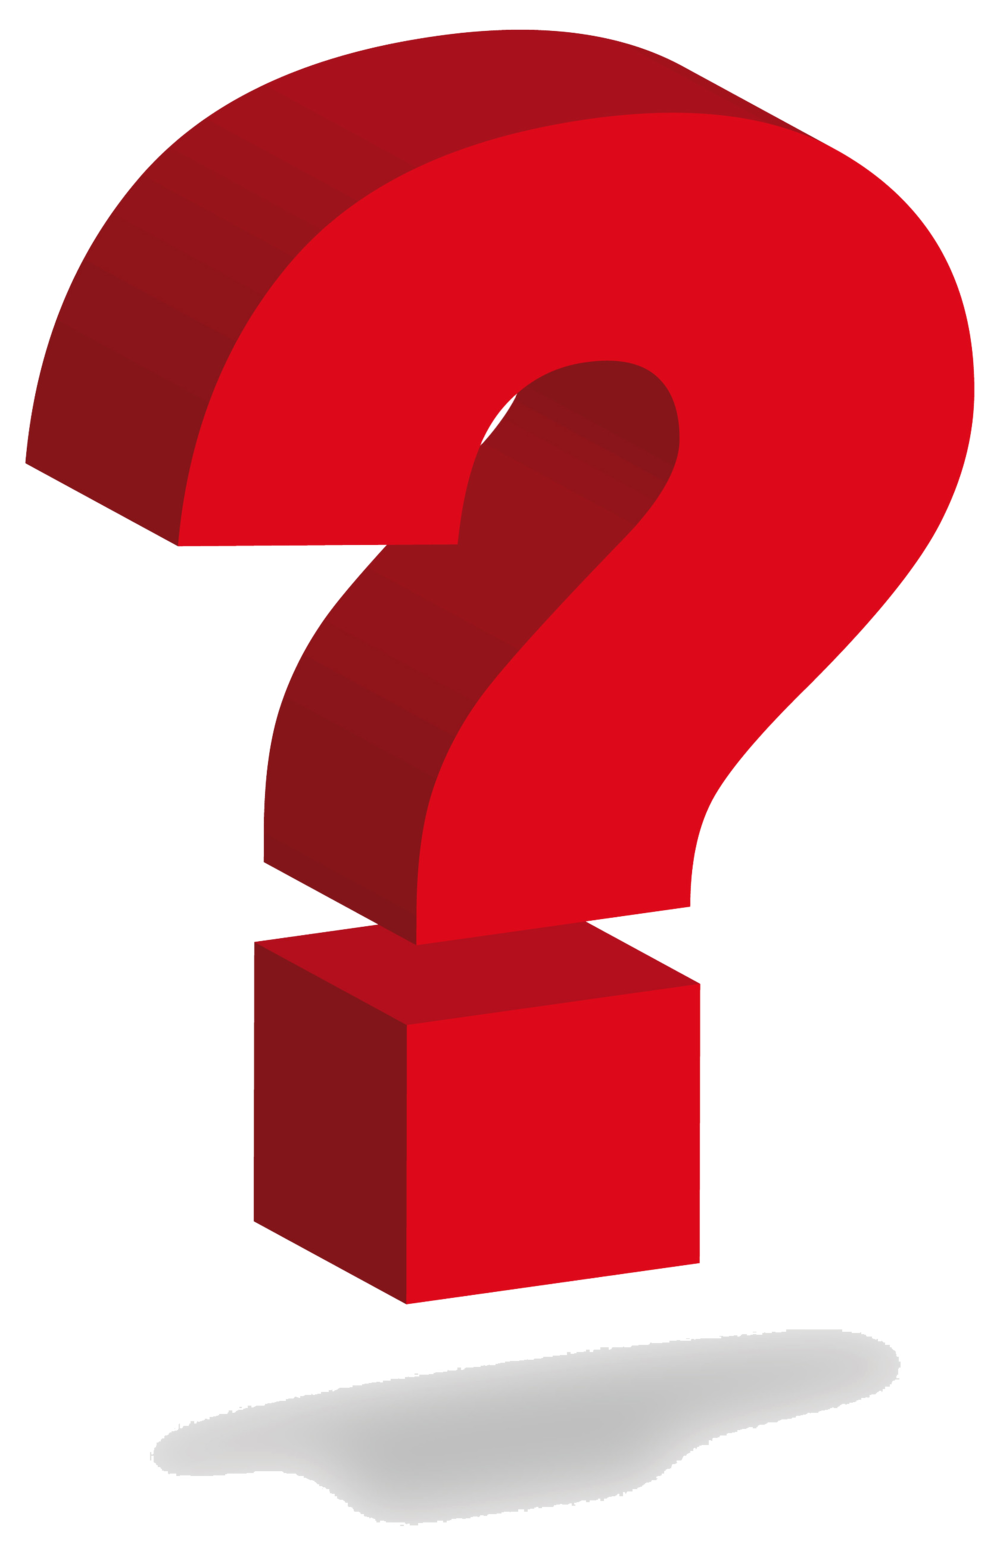 Question Mark clipart pop art Animated Question Clipart collection clipart